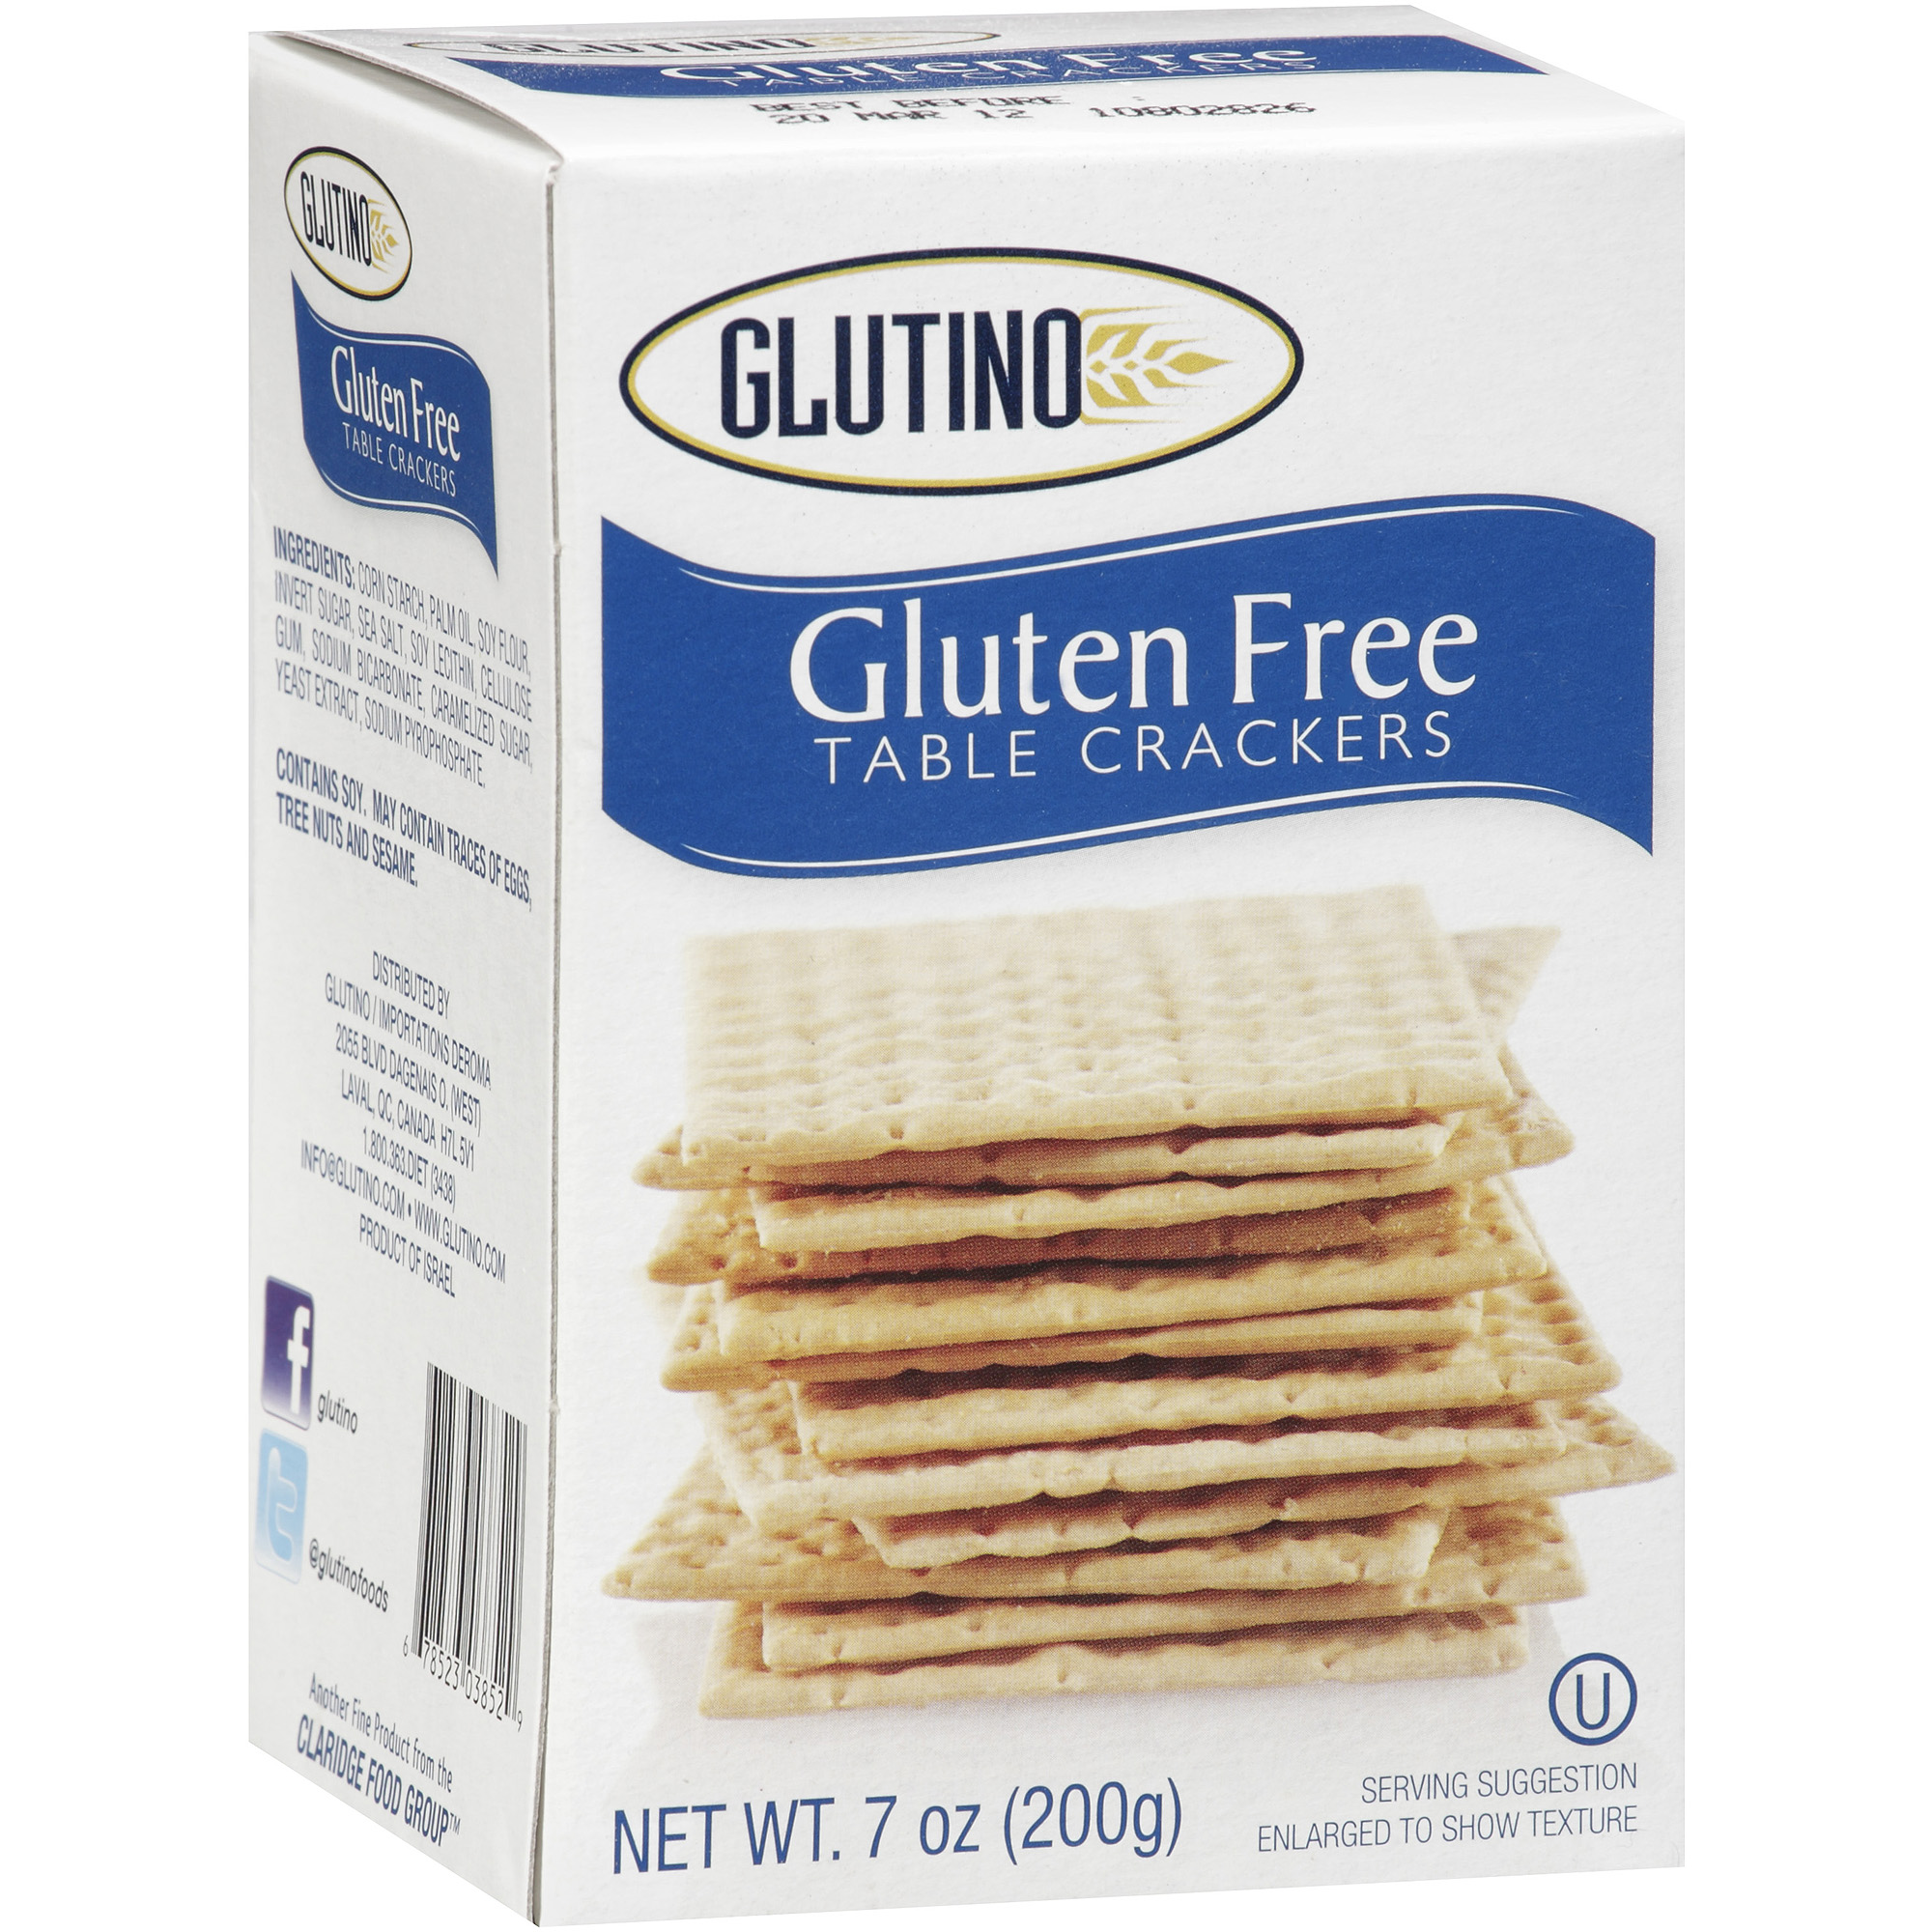 Glutino® Gluten Free Original Table Crackers 7 oz. Box